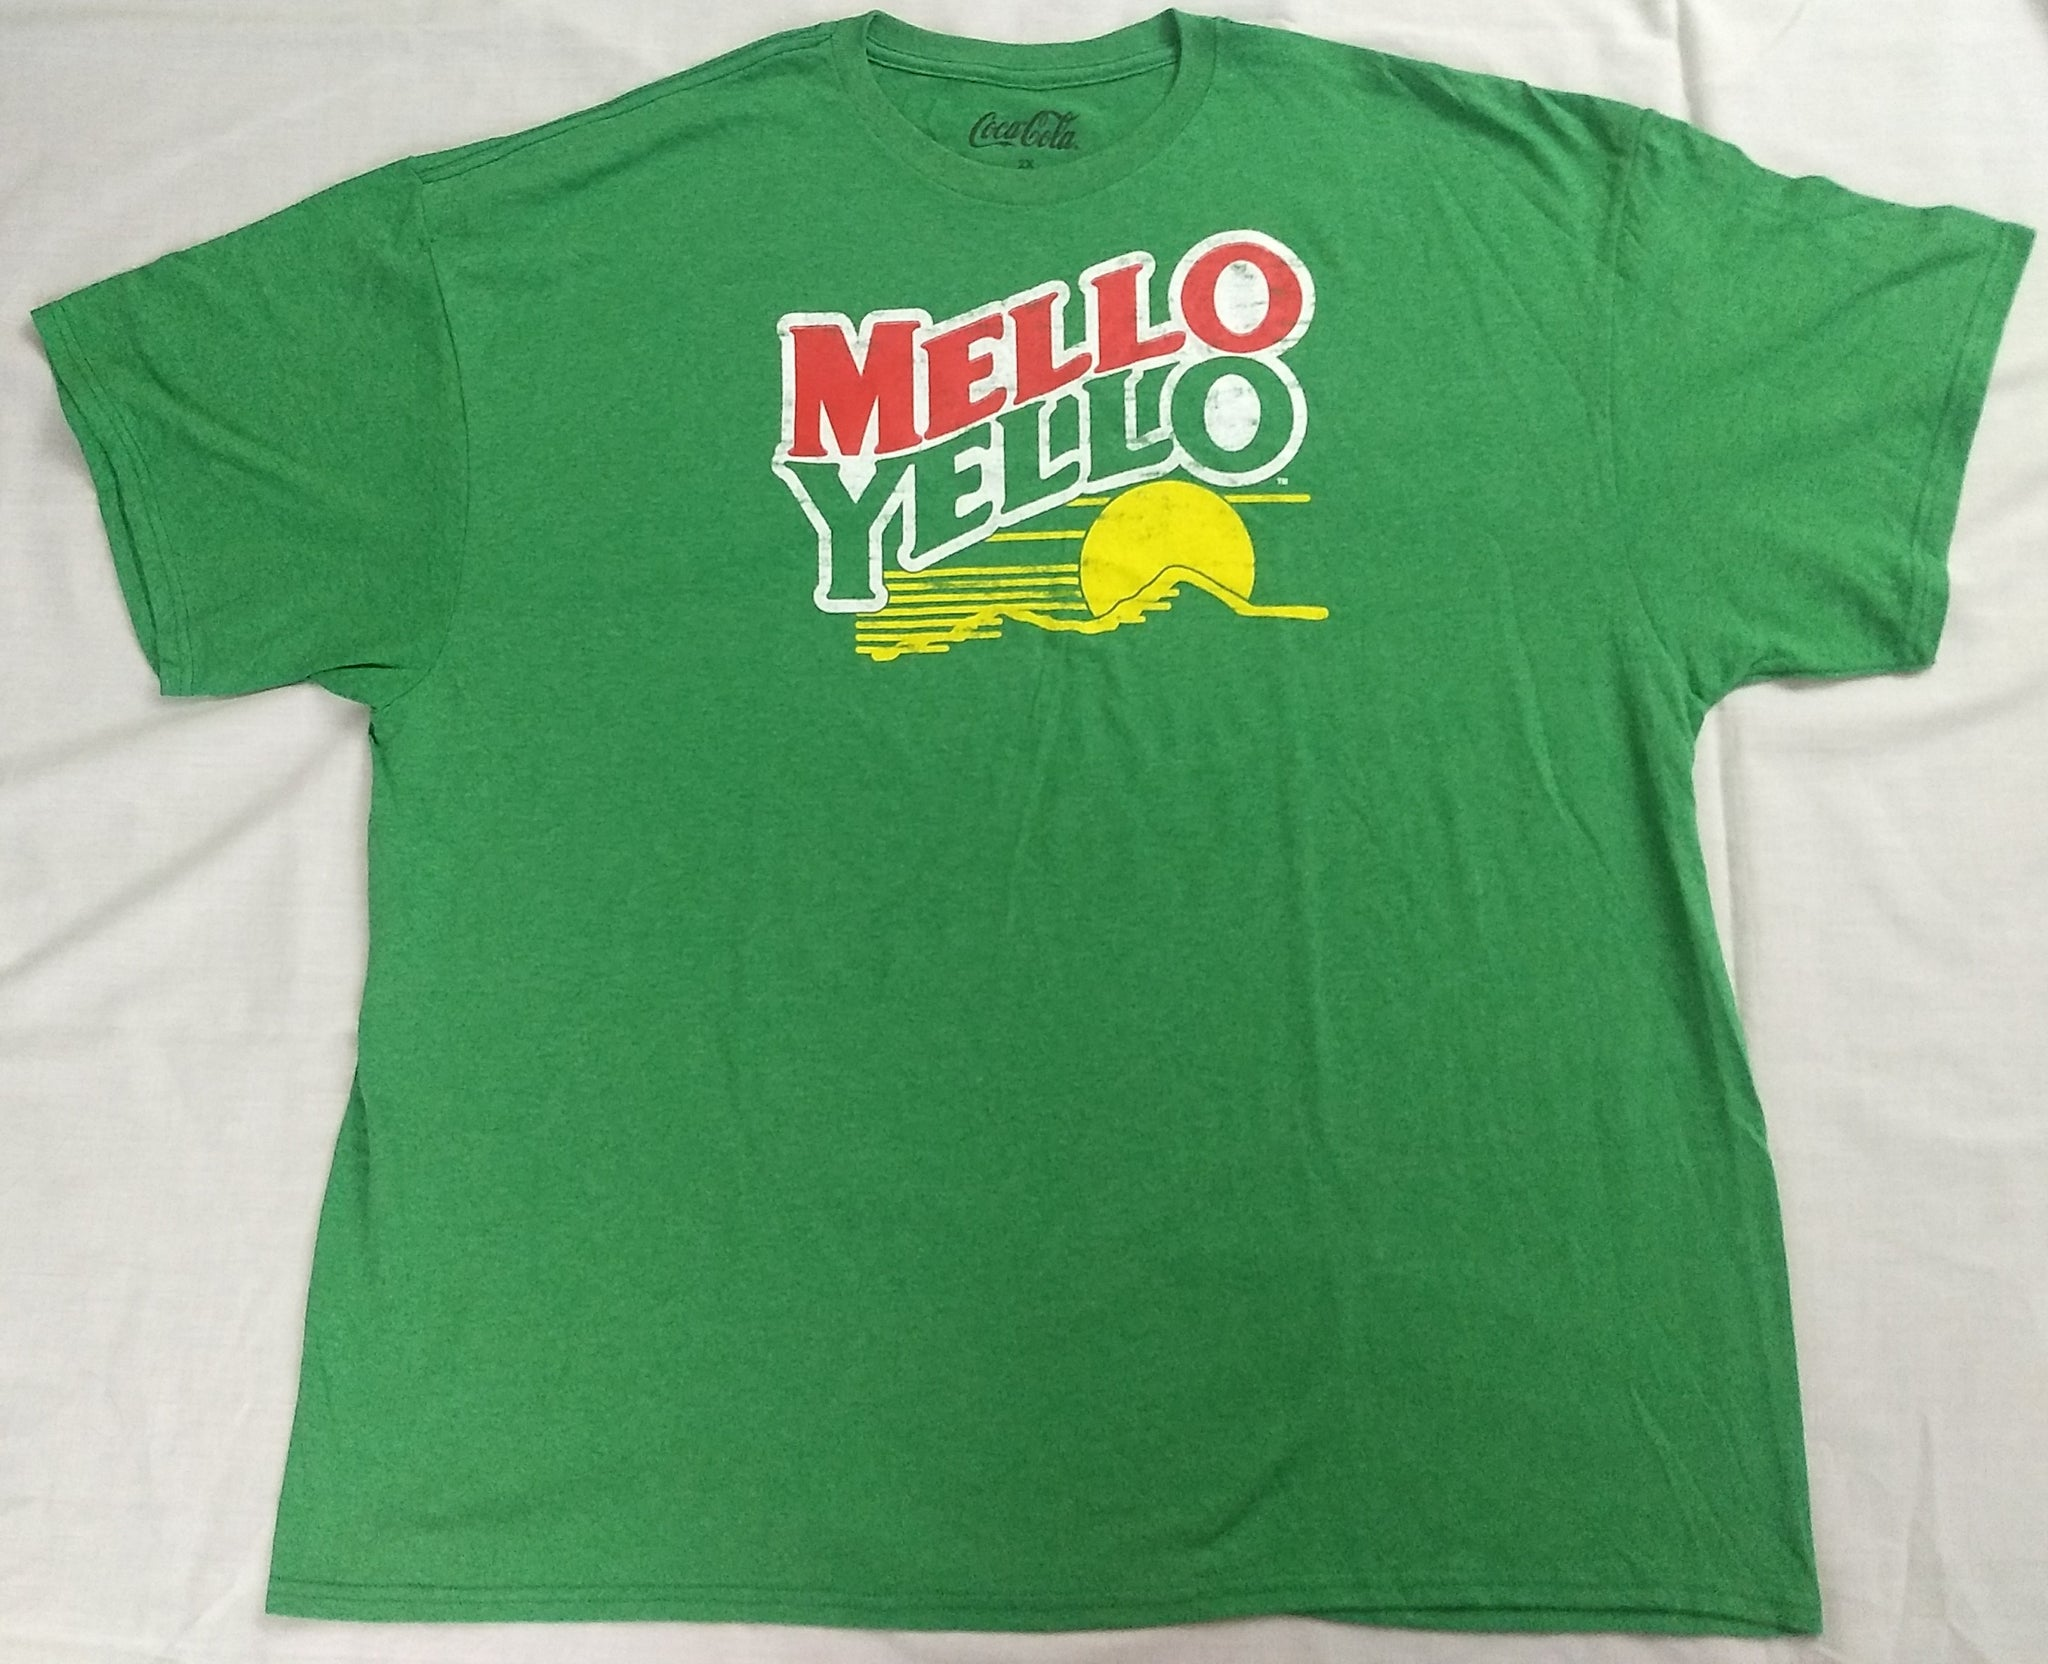 Mello Yello Soda Pop Coca-Cola Mens T-Shirt